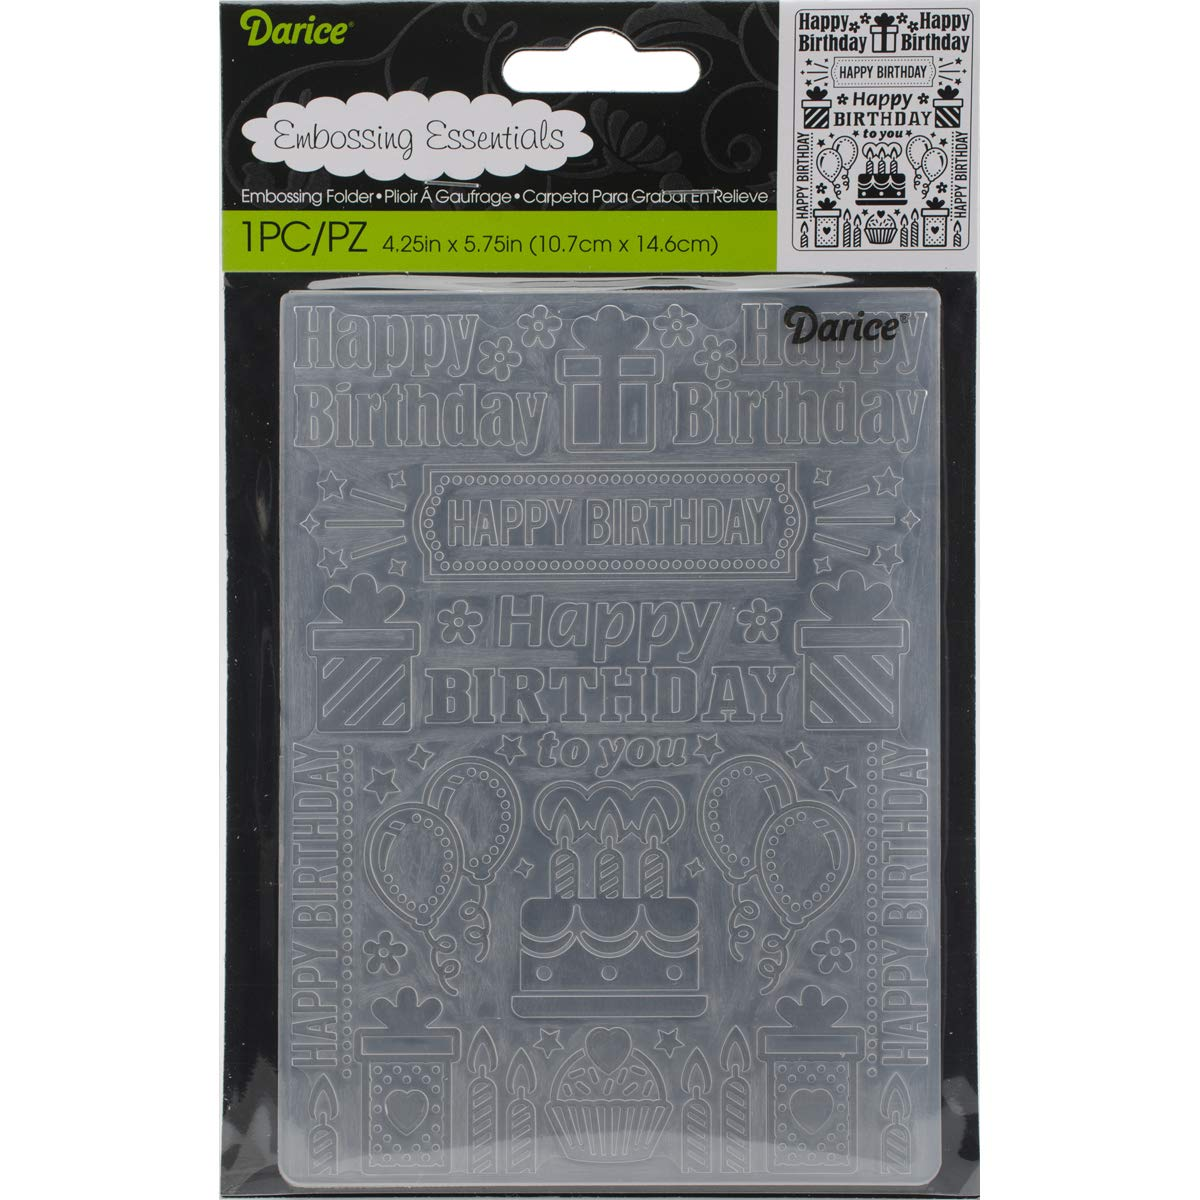 Embossing Folder Birthday Collage 4.25 X 5.75 Inches (4 Pack)